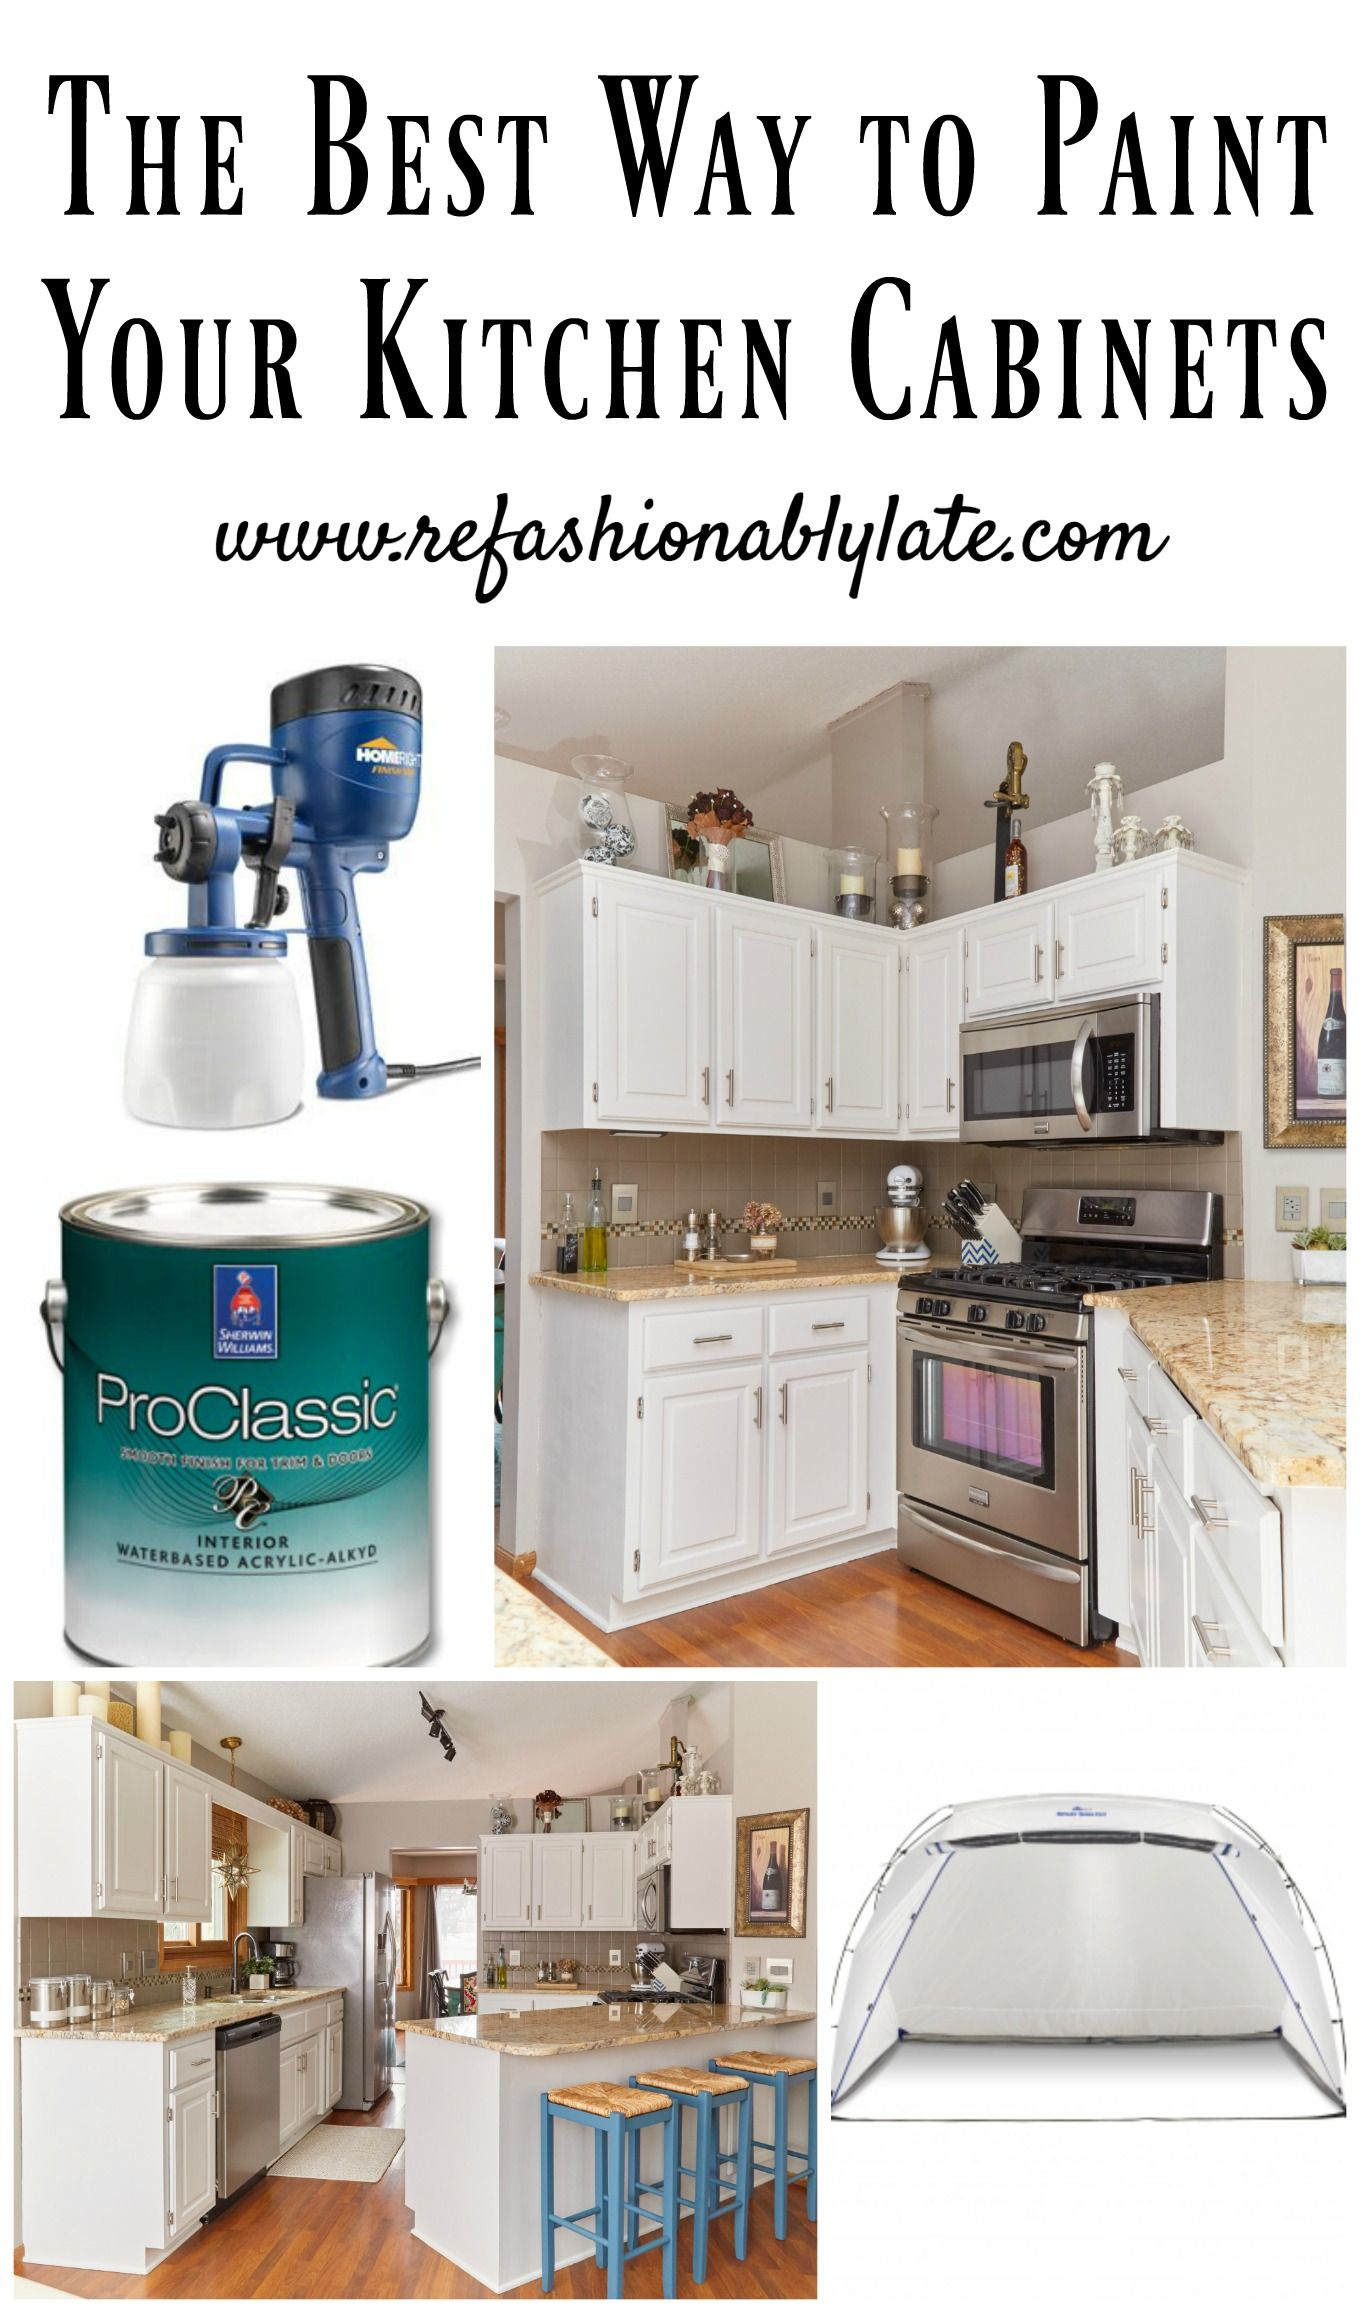 The Best Way to Paint Your Kitchen Cabinets | Hometalk: Spring ... Ideas Painting Your Kitchen Cabinets on painting your walls ideas, painting tiles in kitchen, painting your fireplace ideas, painting your home ideas, painting kitchen cabinets two colors, painting kitchen cabinets without sanding, painting old particle board cabinets, painting kitchen cabinets white, living room paint ideas, painting kitchen tiles ideas, painting cupboards, kitchen painting and decorating ideas, painting kitchen cabinets dark,